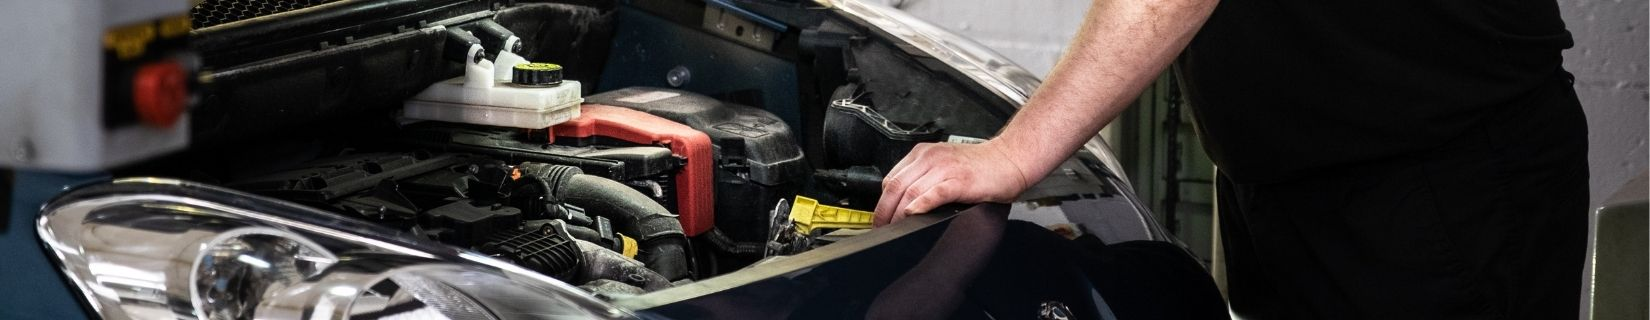 mechanic servicing a car with the bonnet lifted on the car